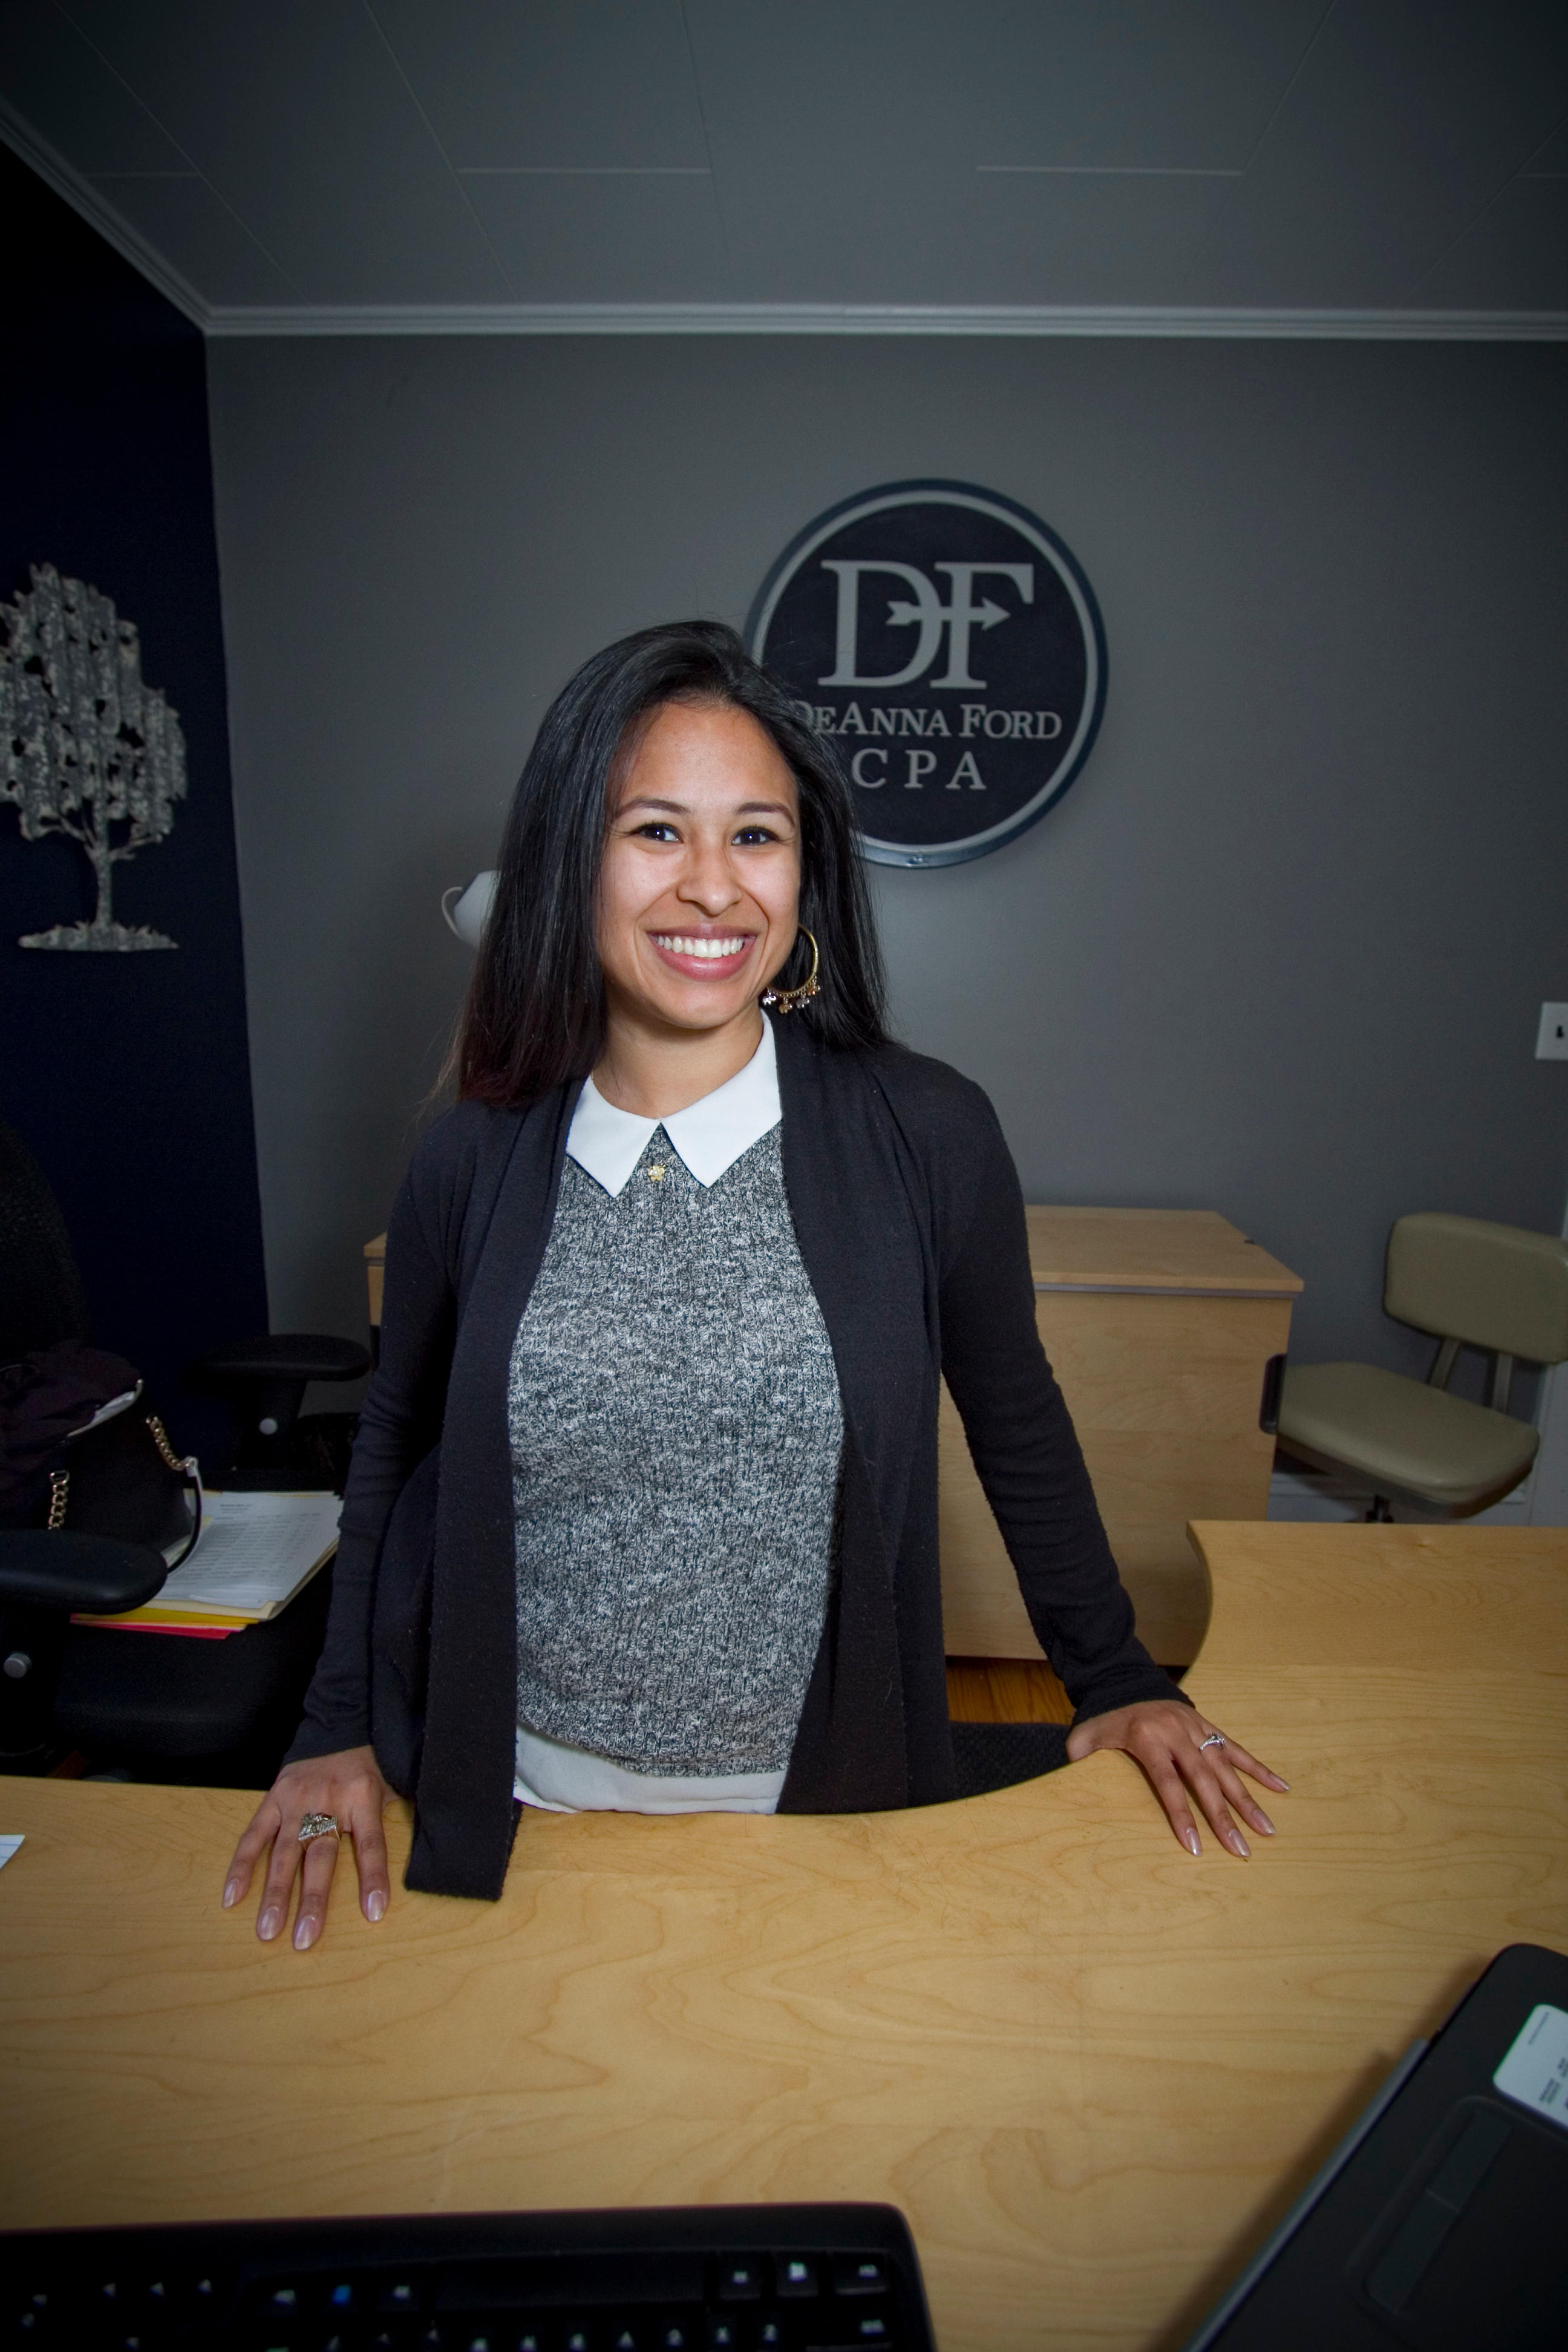 DeAnna Ford, CPA image 8